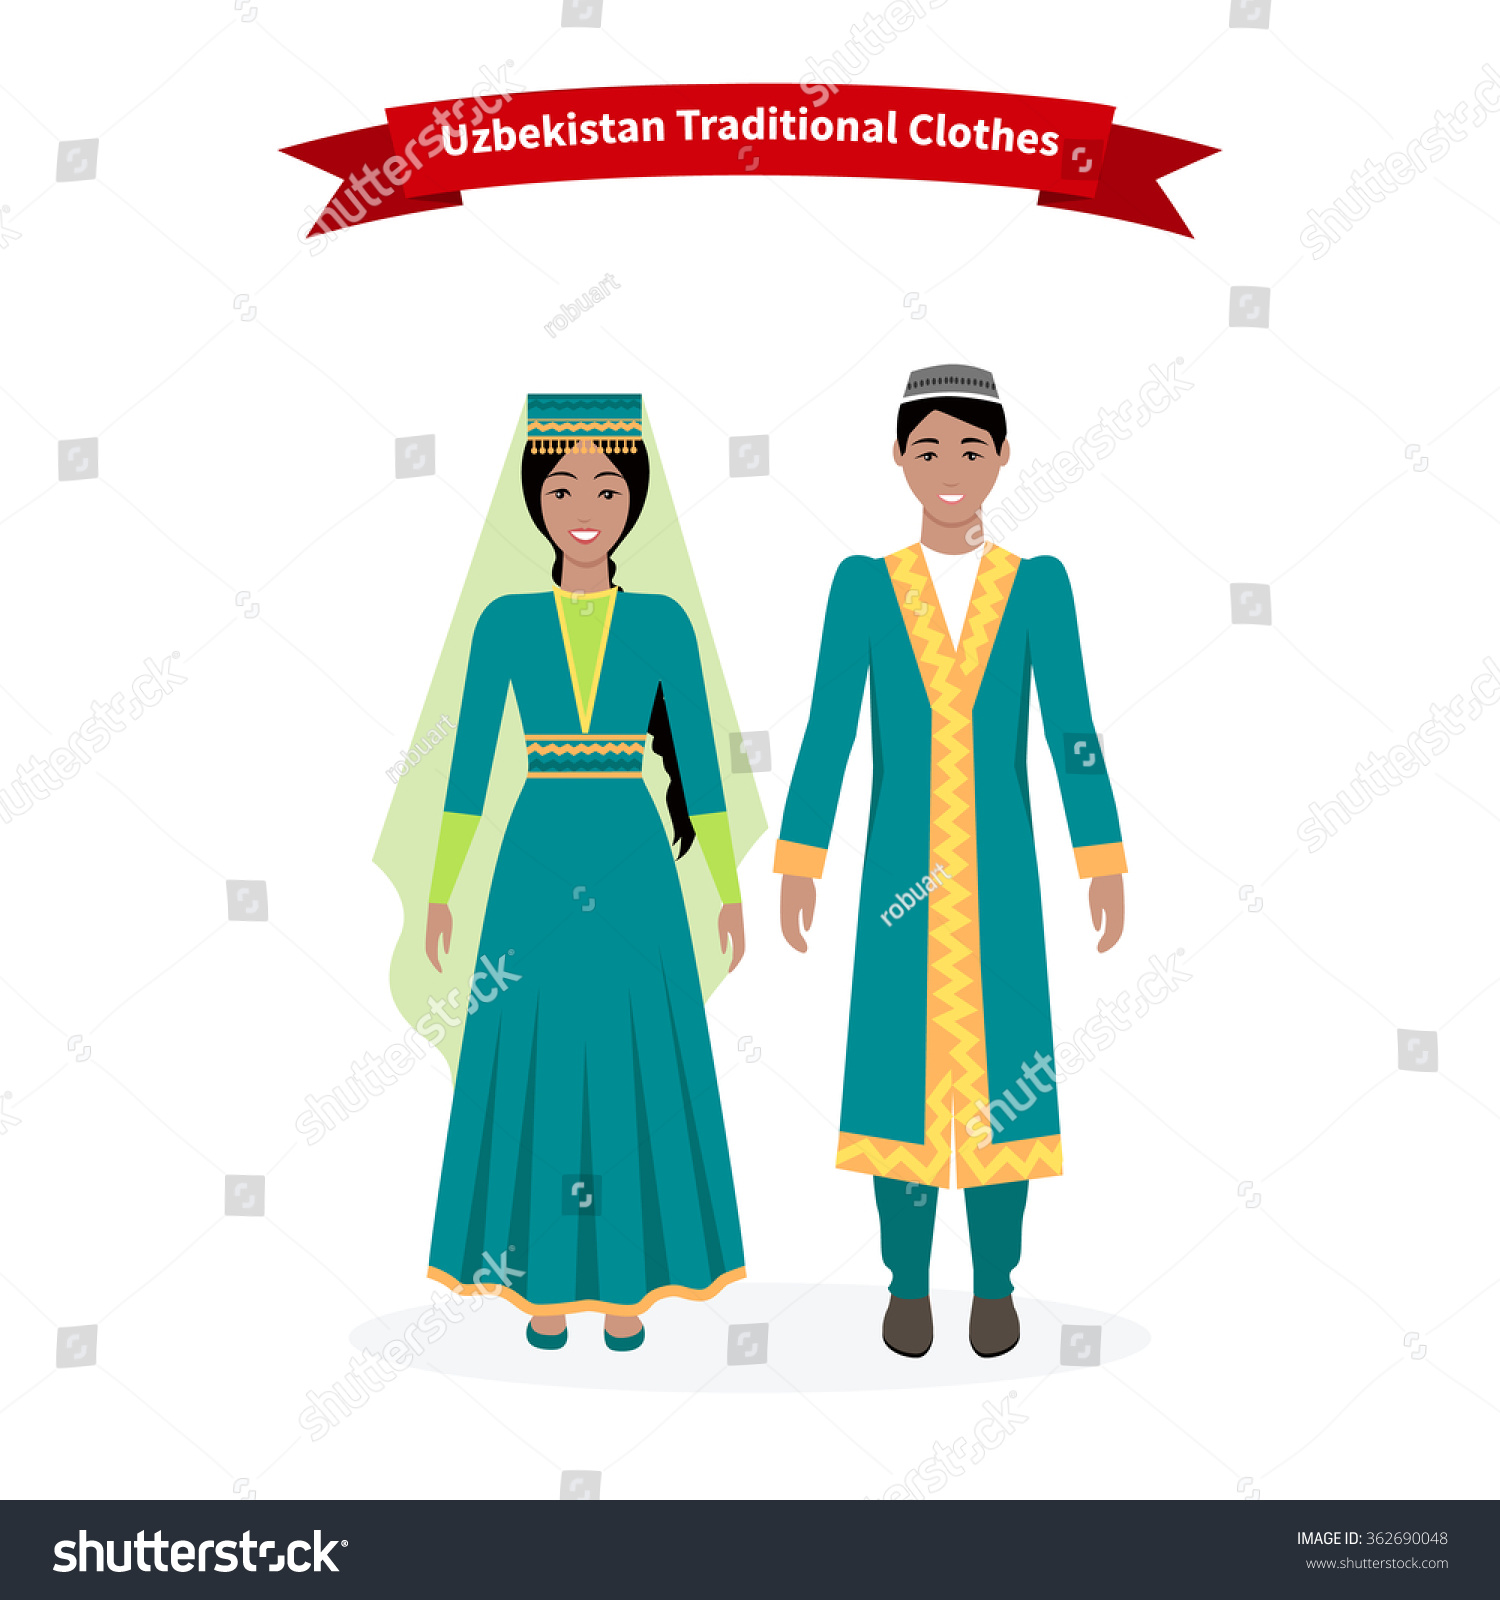 Uzbekistan Traditional Clothes People Clothing Hat Stock ...